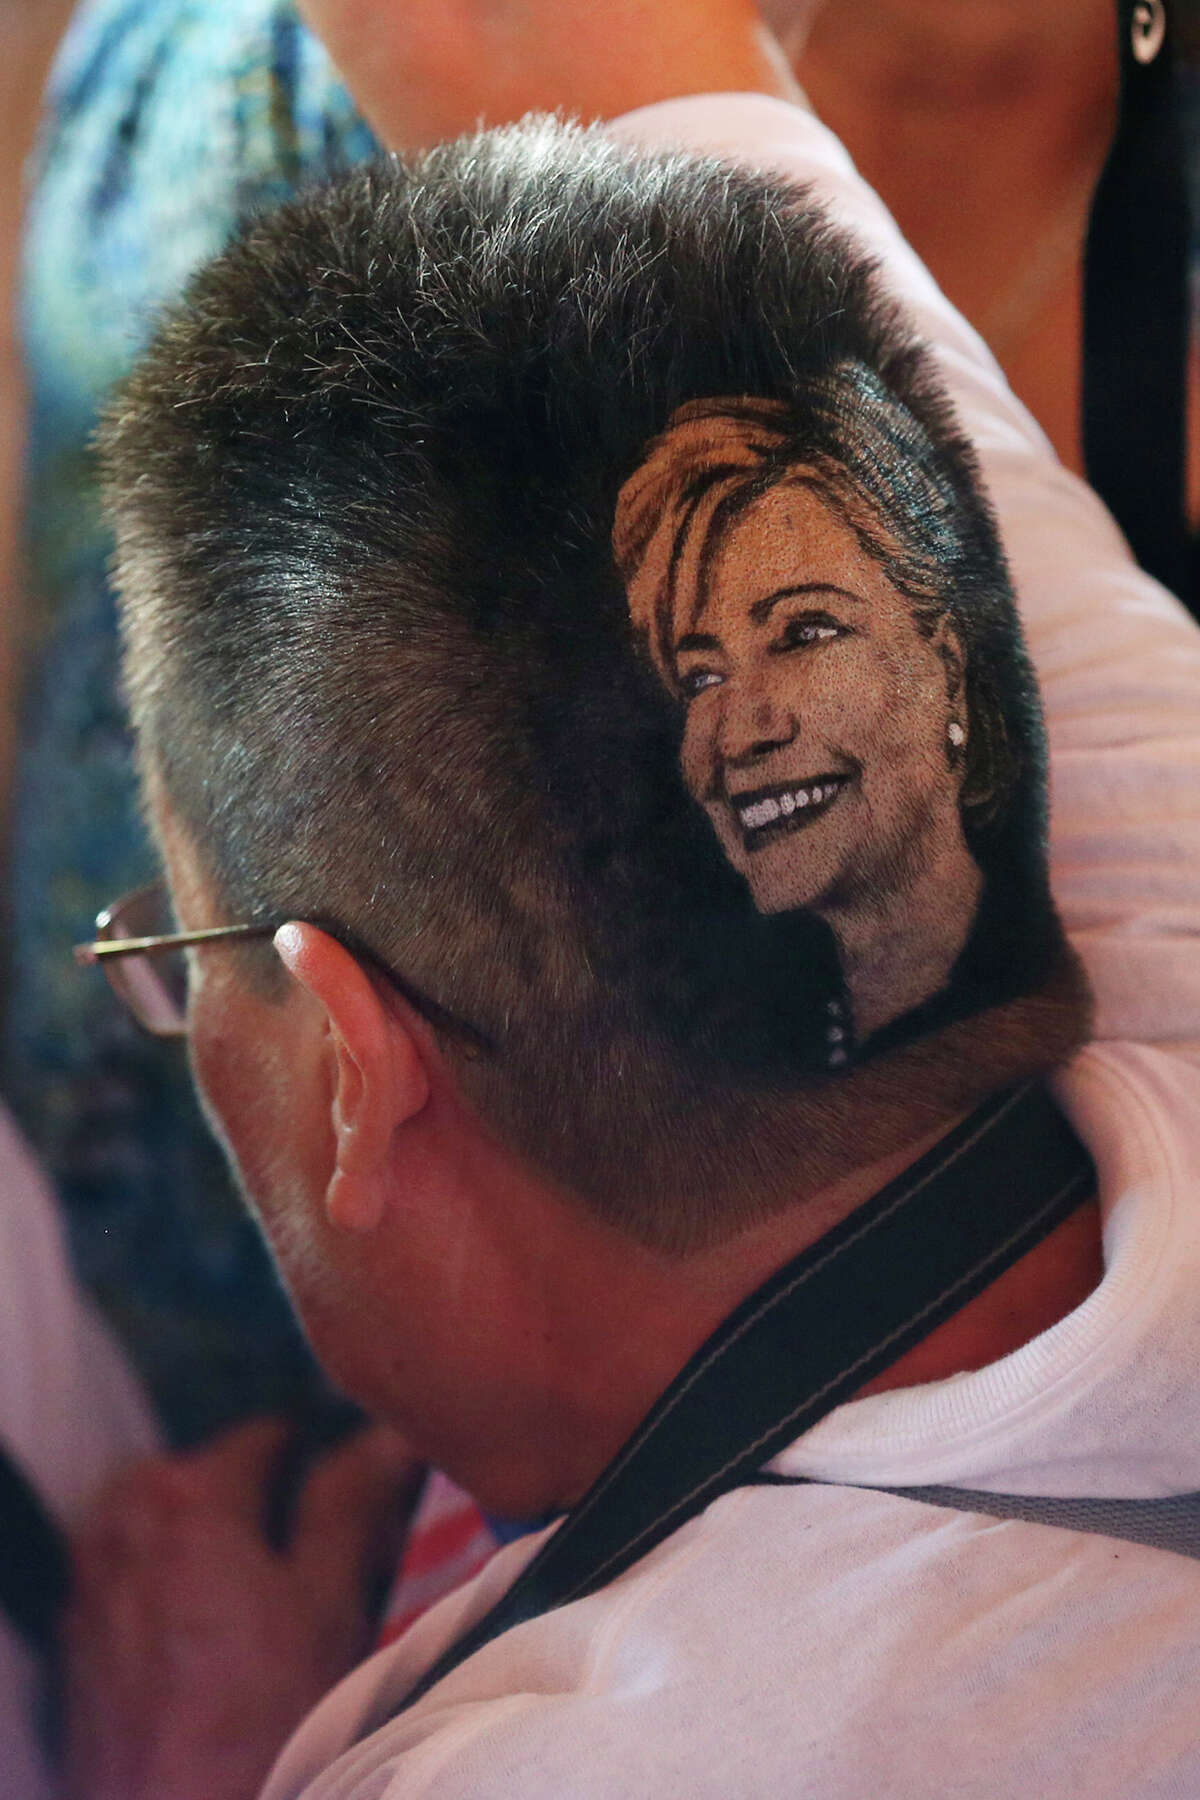 Maria Anita Monsivaiz sports a haircut in Democratic presidential candidate Hillary Clinton's image during a rally for Clinton at Sunset Station. The crowd numbered in the thousands and was predominately Hispanic. Before the rally, Clinton attended a Q&A session with members of the U.S. Hispanic Chamber of Commerce. The haircut was the design of local barber, Rob the Original.